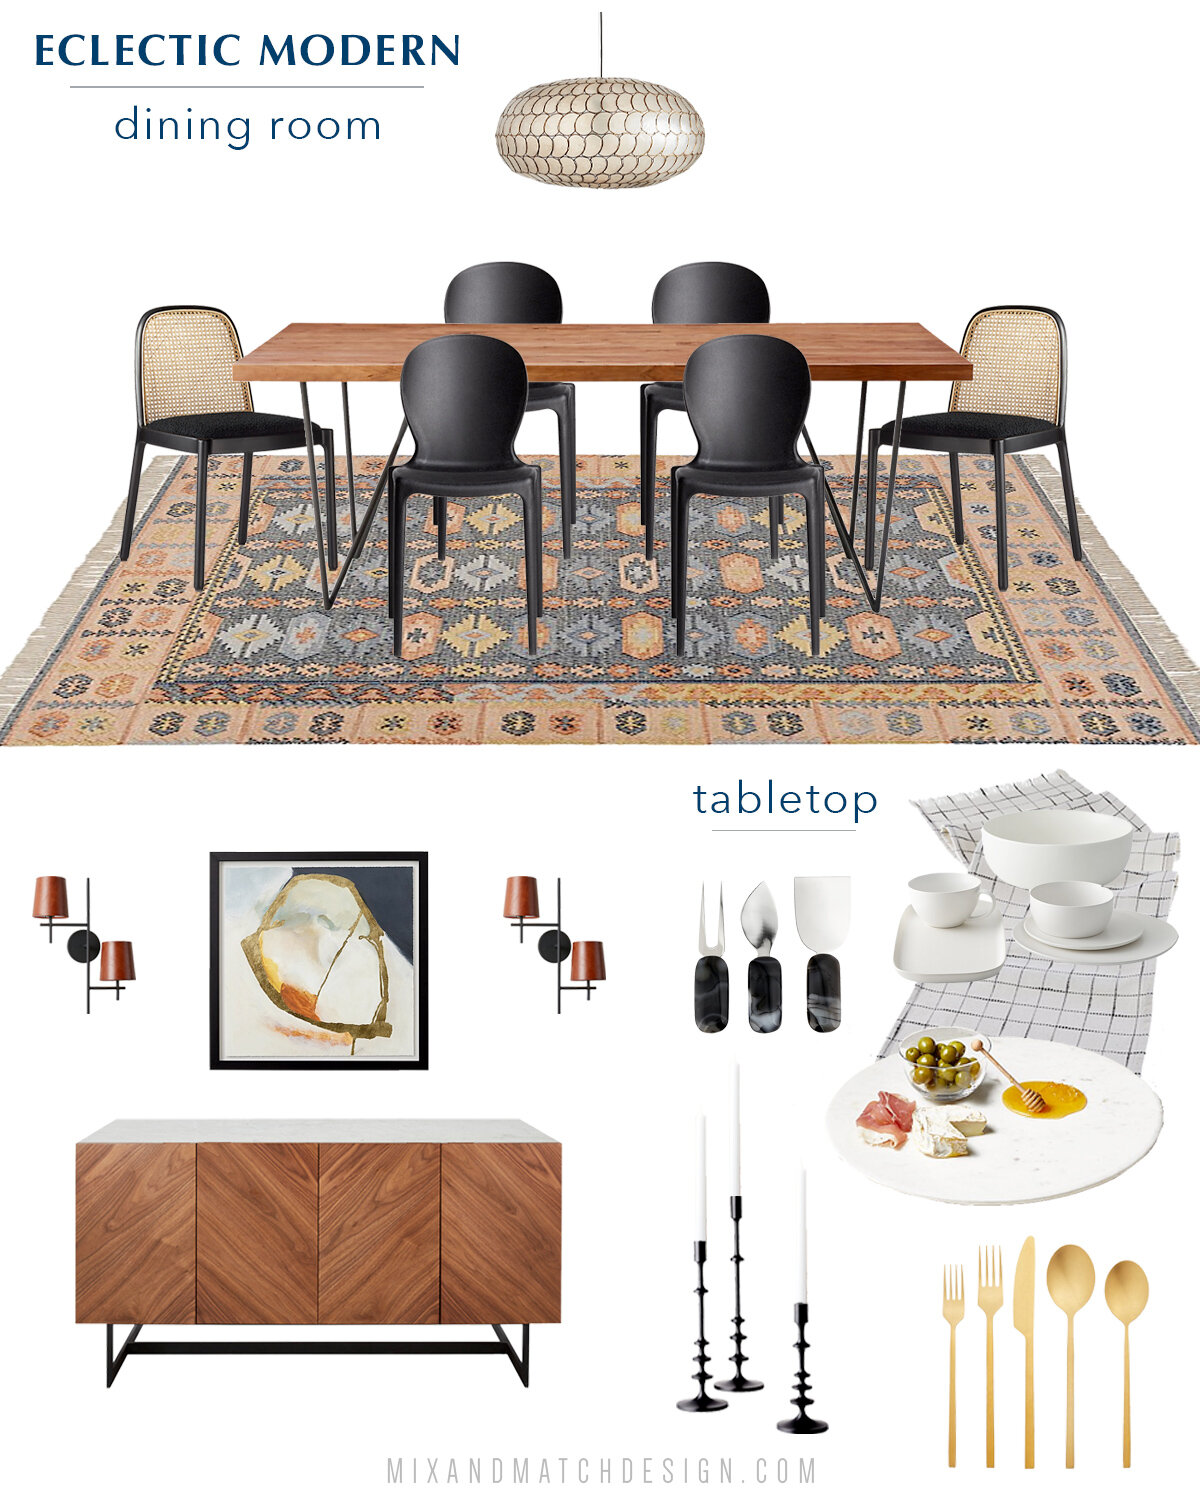 It's time for another Shop the Design! This time, it's an eclectic modern dining room from CB2. With the holiday hosting season right around the corner, now is the perfect time to get that space pulled together!  Grab the sources for this dining room and hear my thoughts behind the design over on the blog!